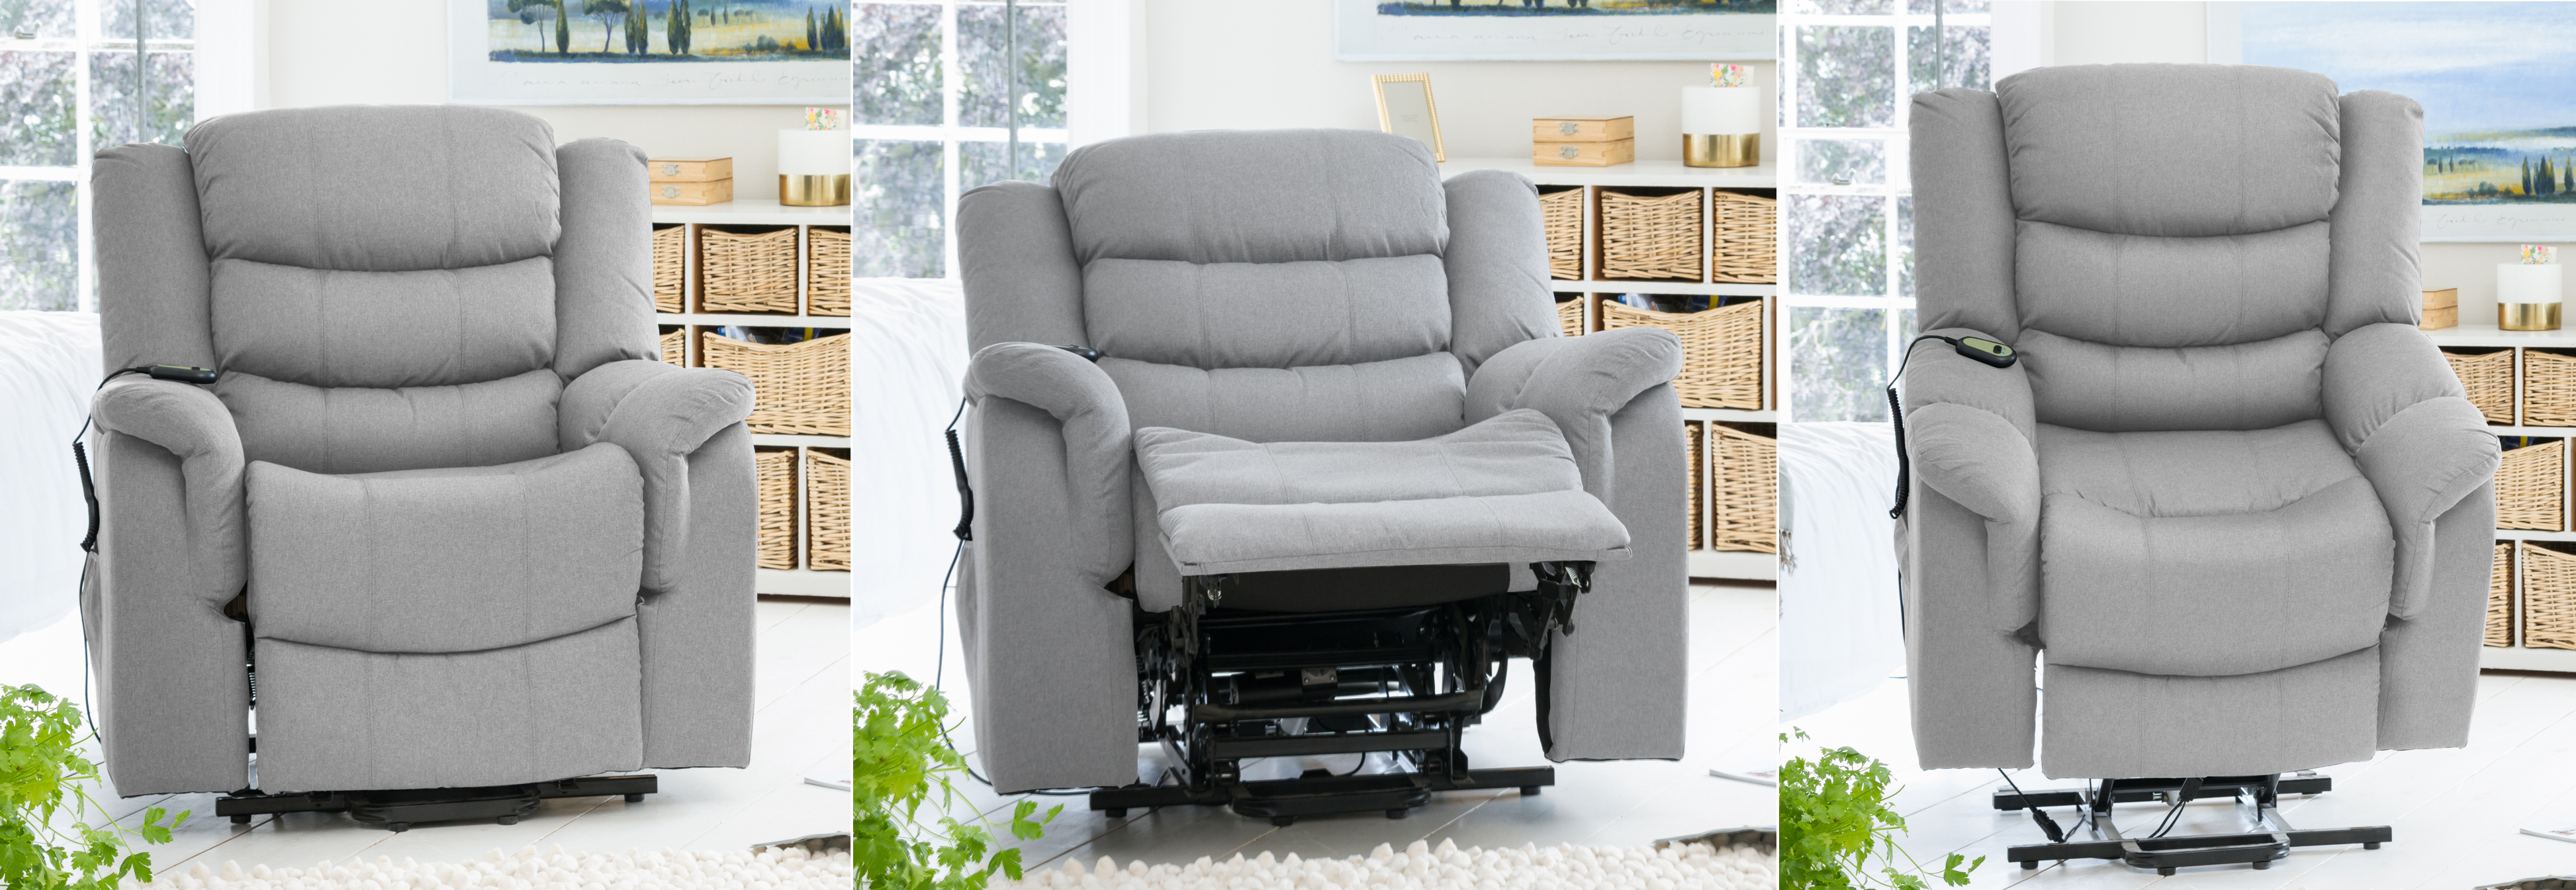 Portman Riser Recliner with Massage and Heat light grey